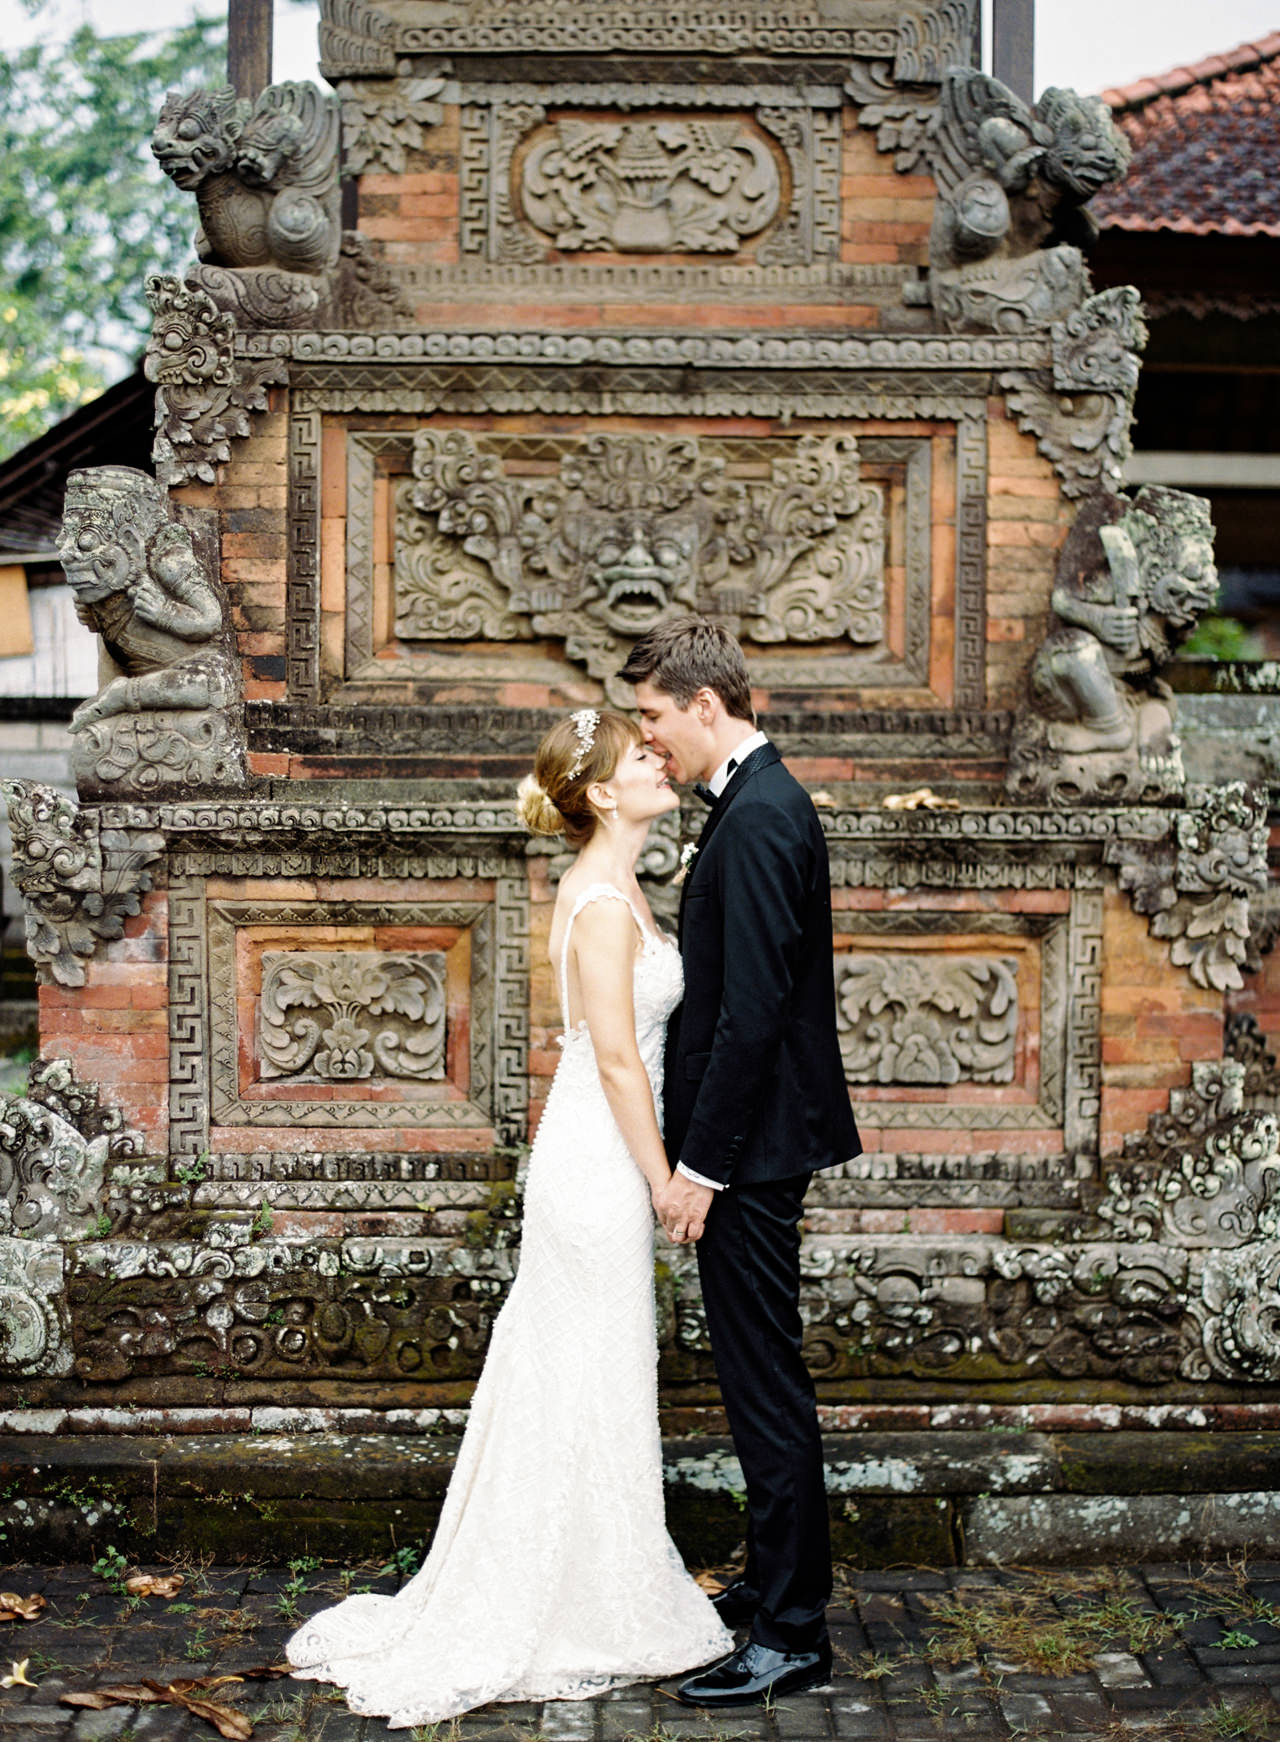 Bali Fine Art Film Photography By Gusmank Wedding Photography